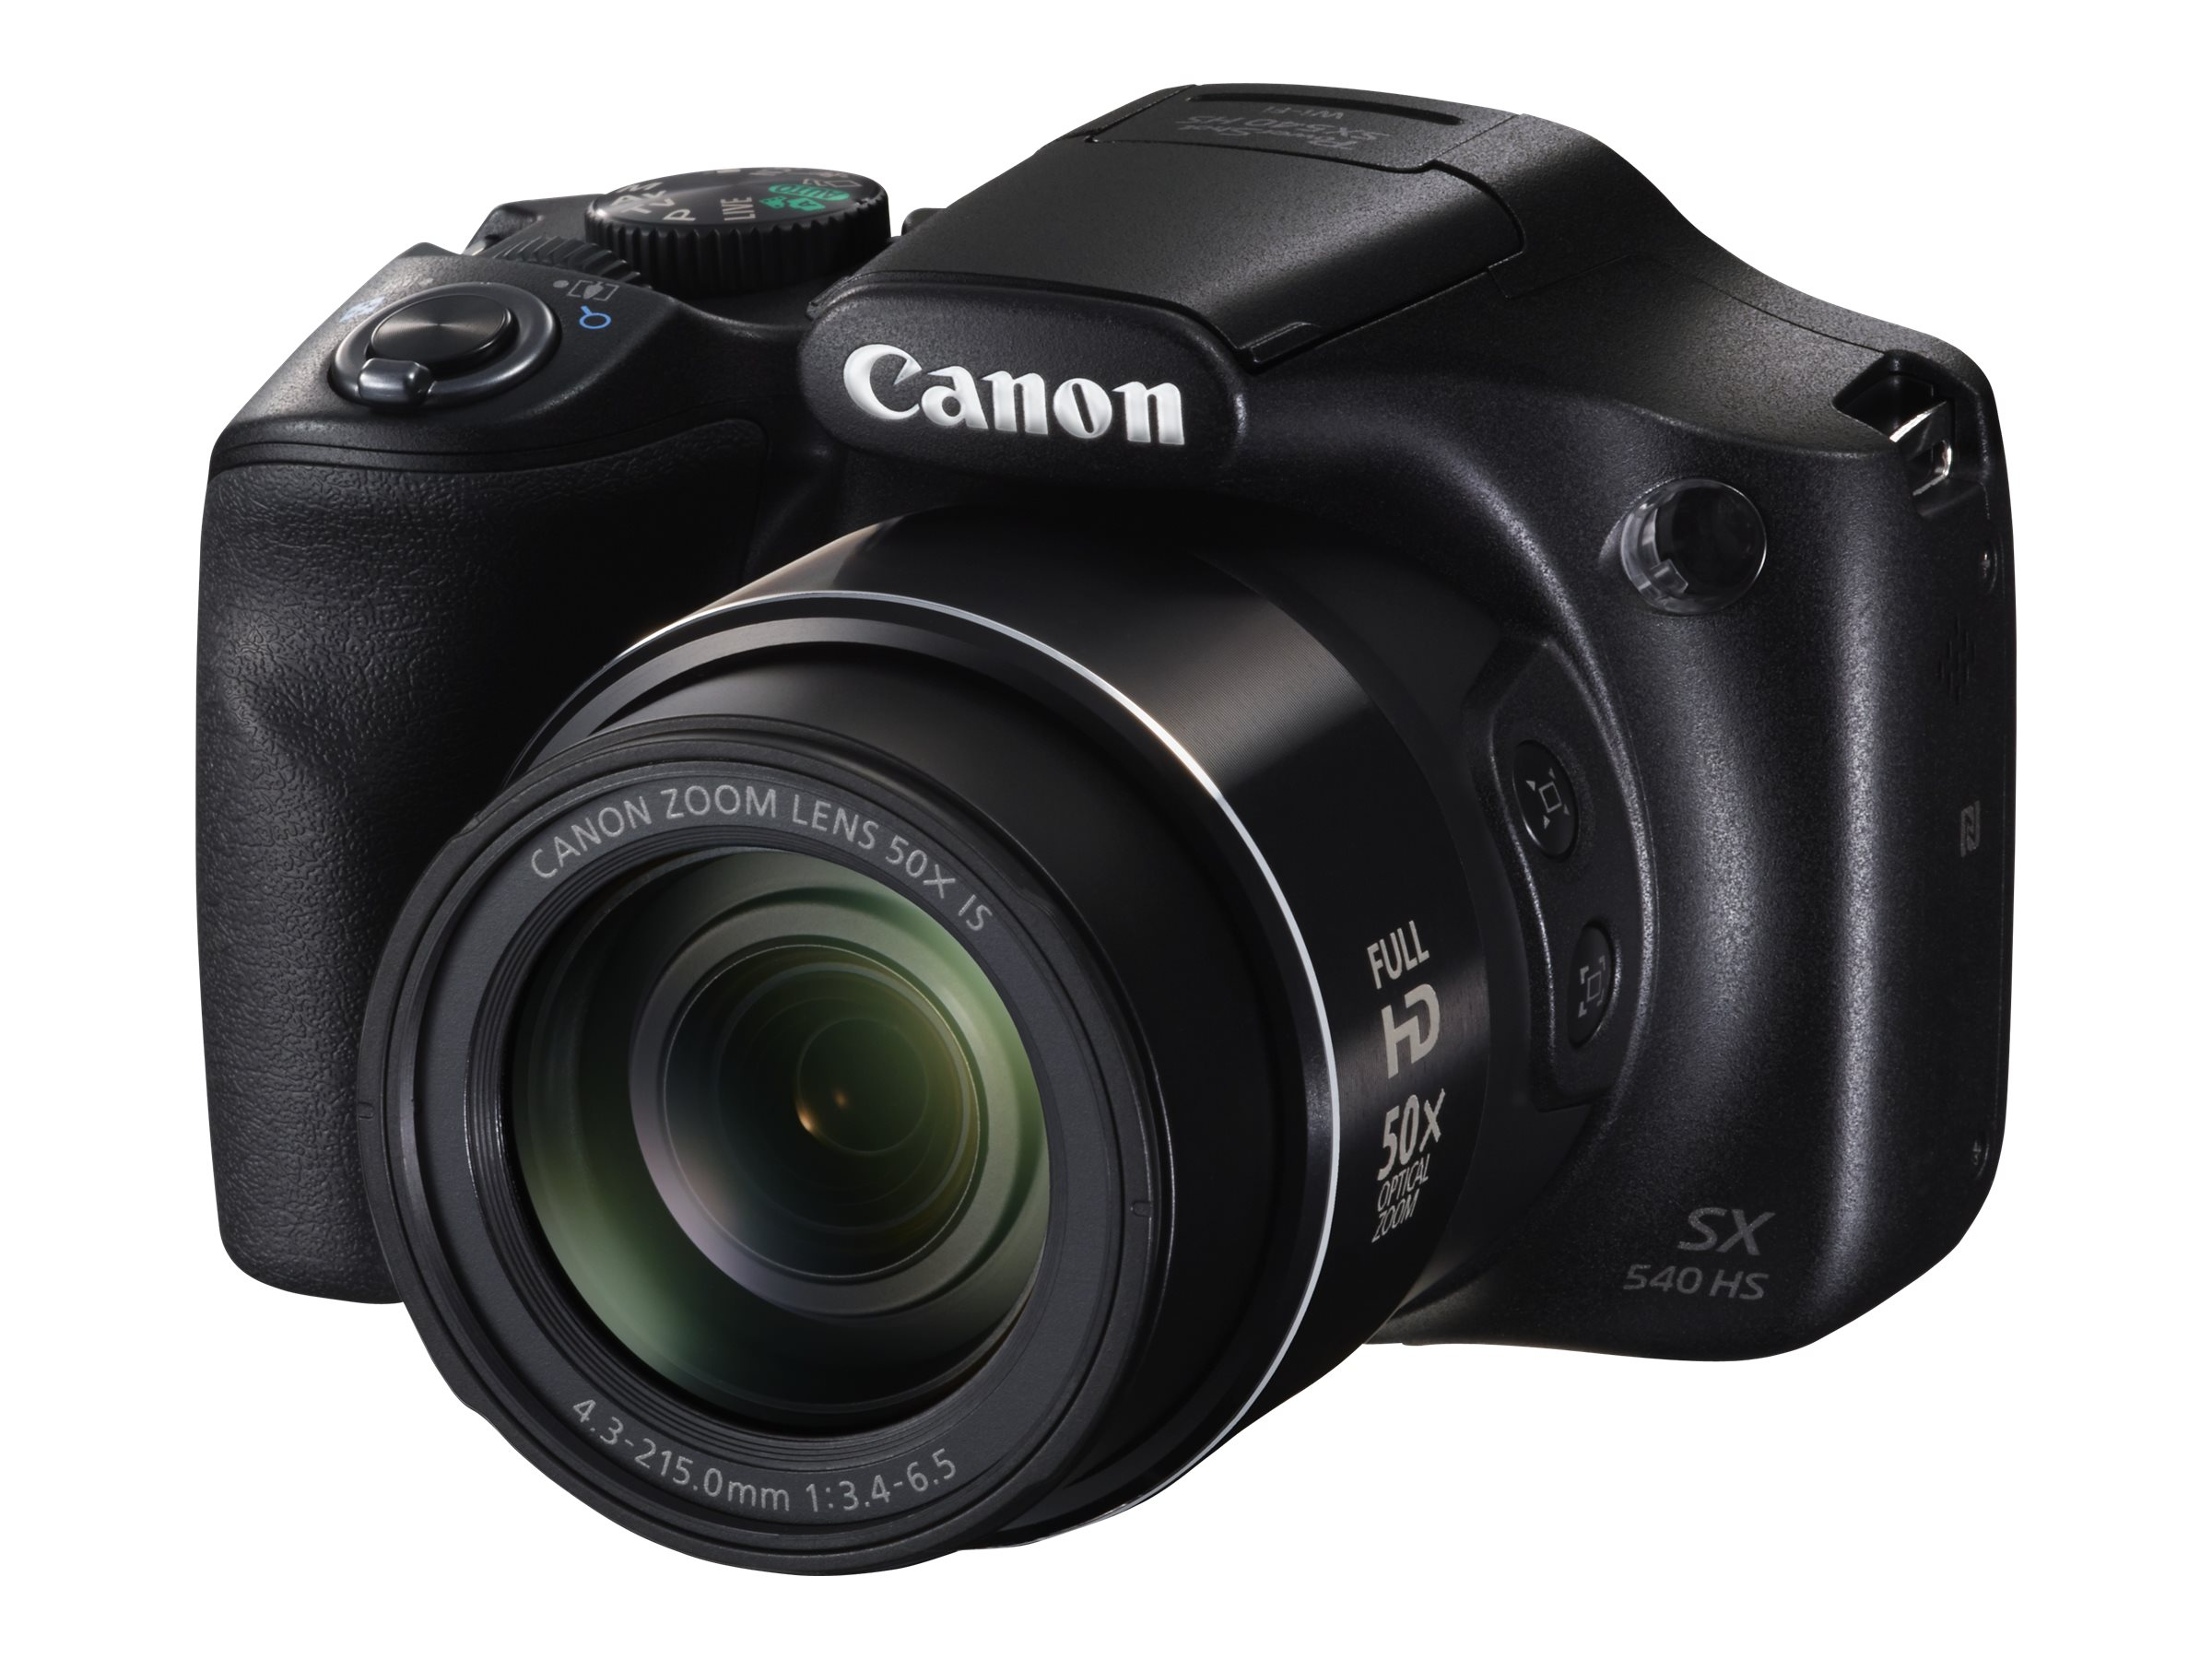 Canon PowerShot SX540 HS Digital Camera, Black